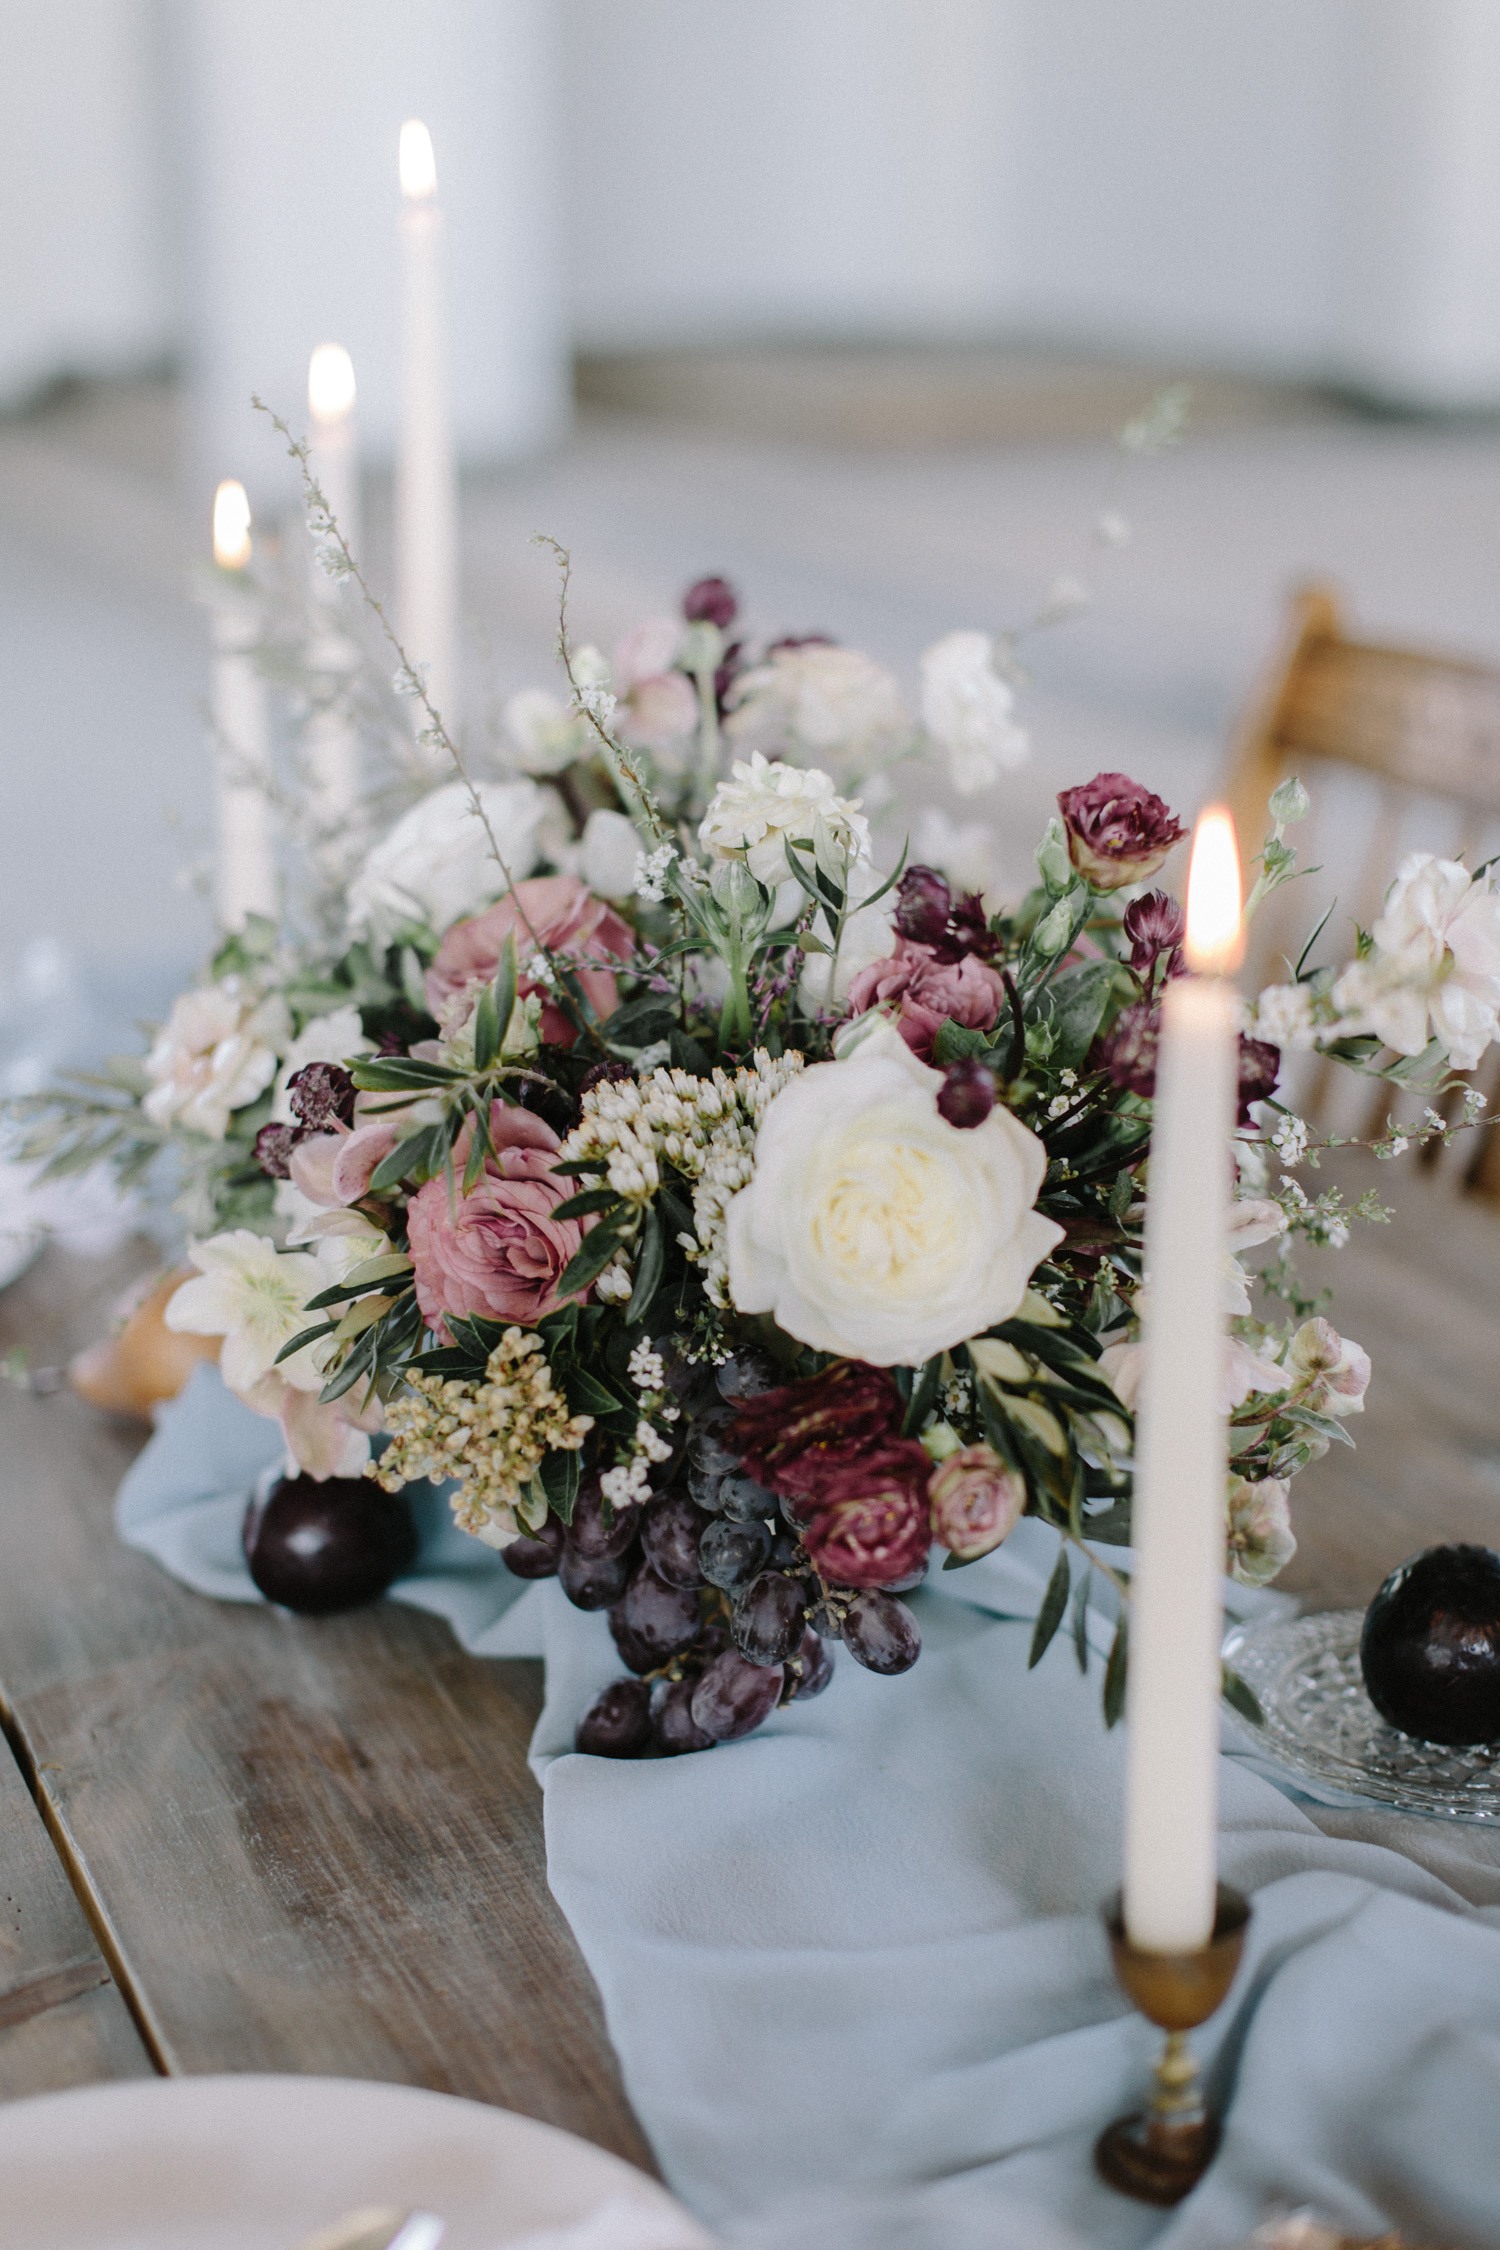 A lush floral centerpiece rests on a wood table with candles in a Detroit cathedral wedding venue